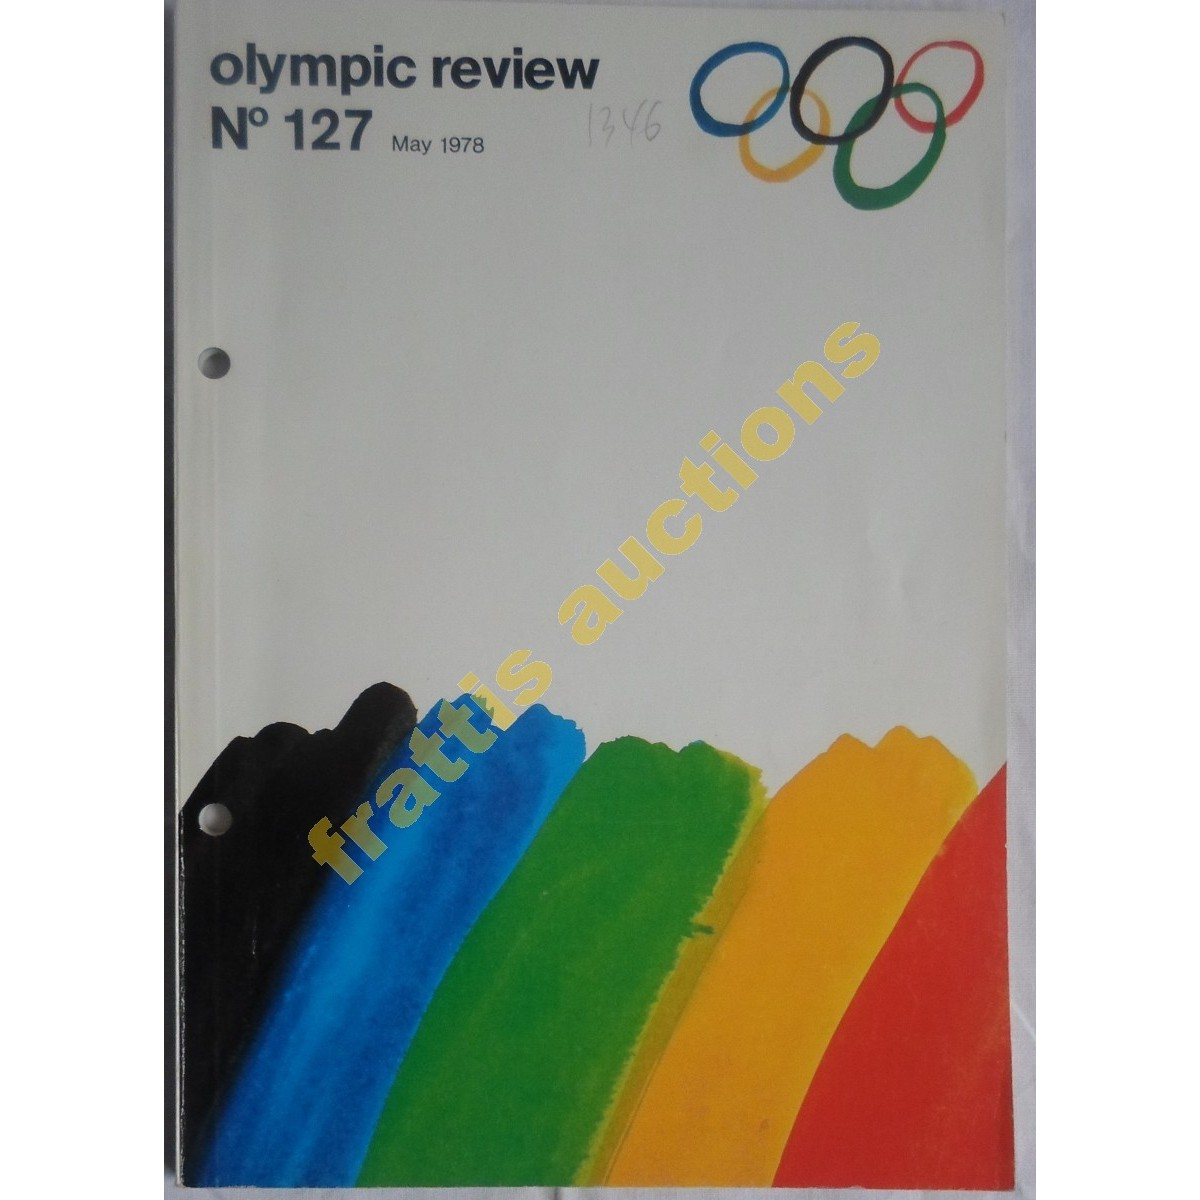 OLYMPIC REVIEW No127 May 1978